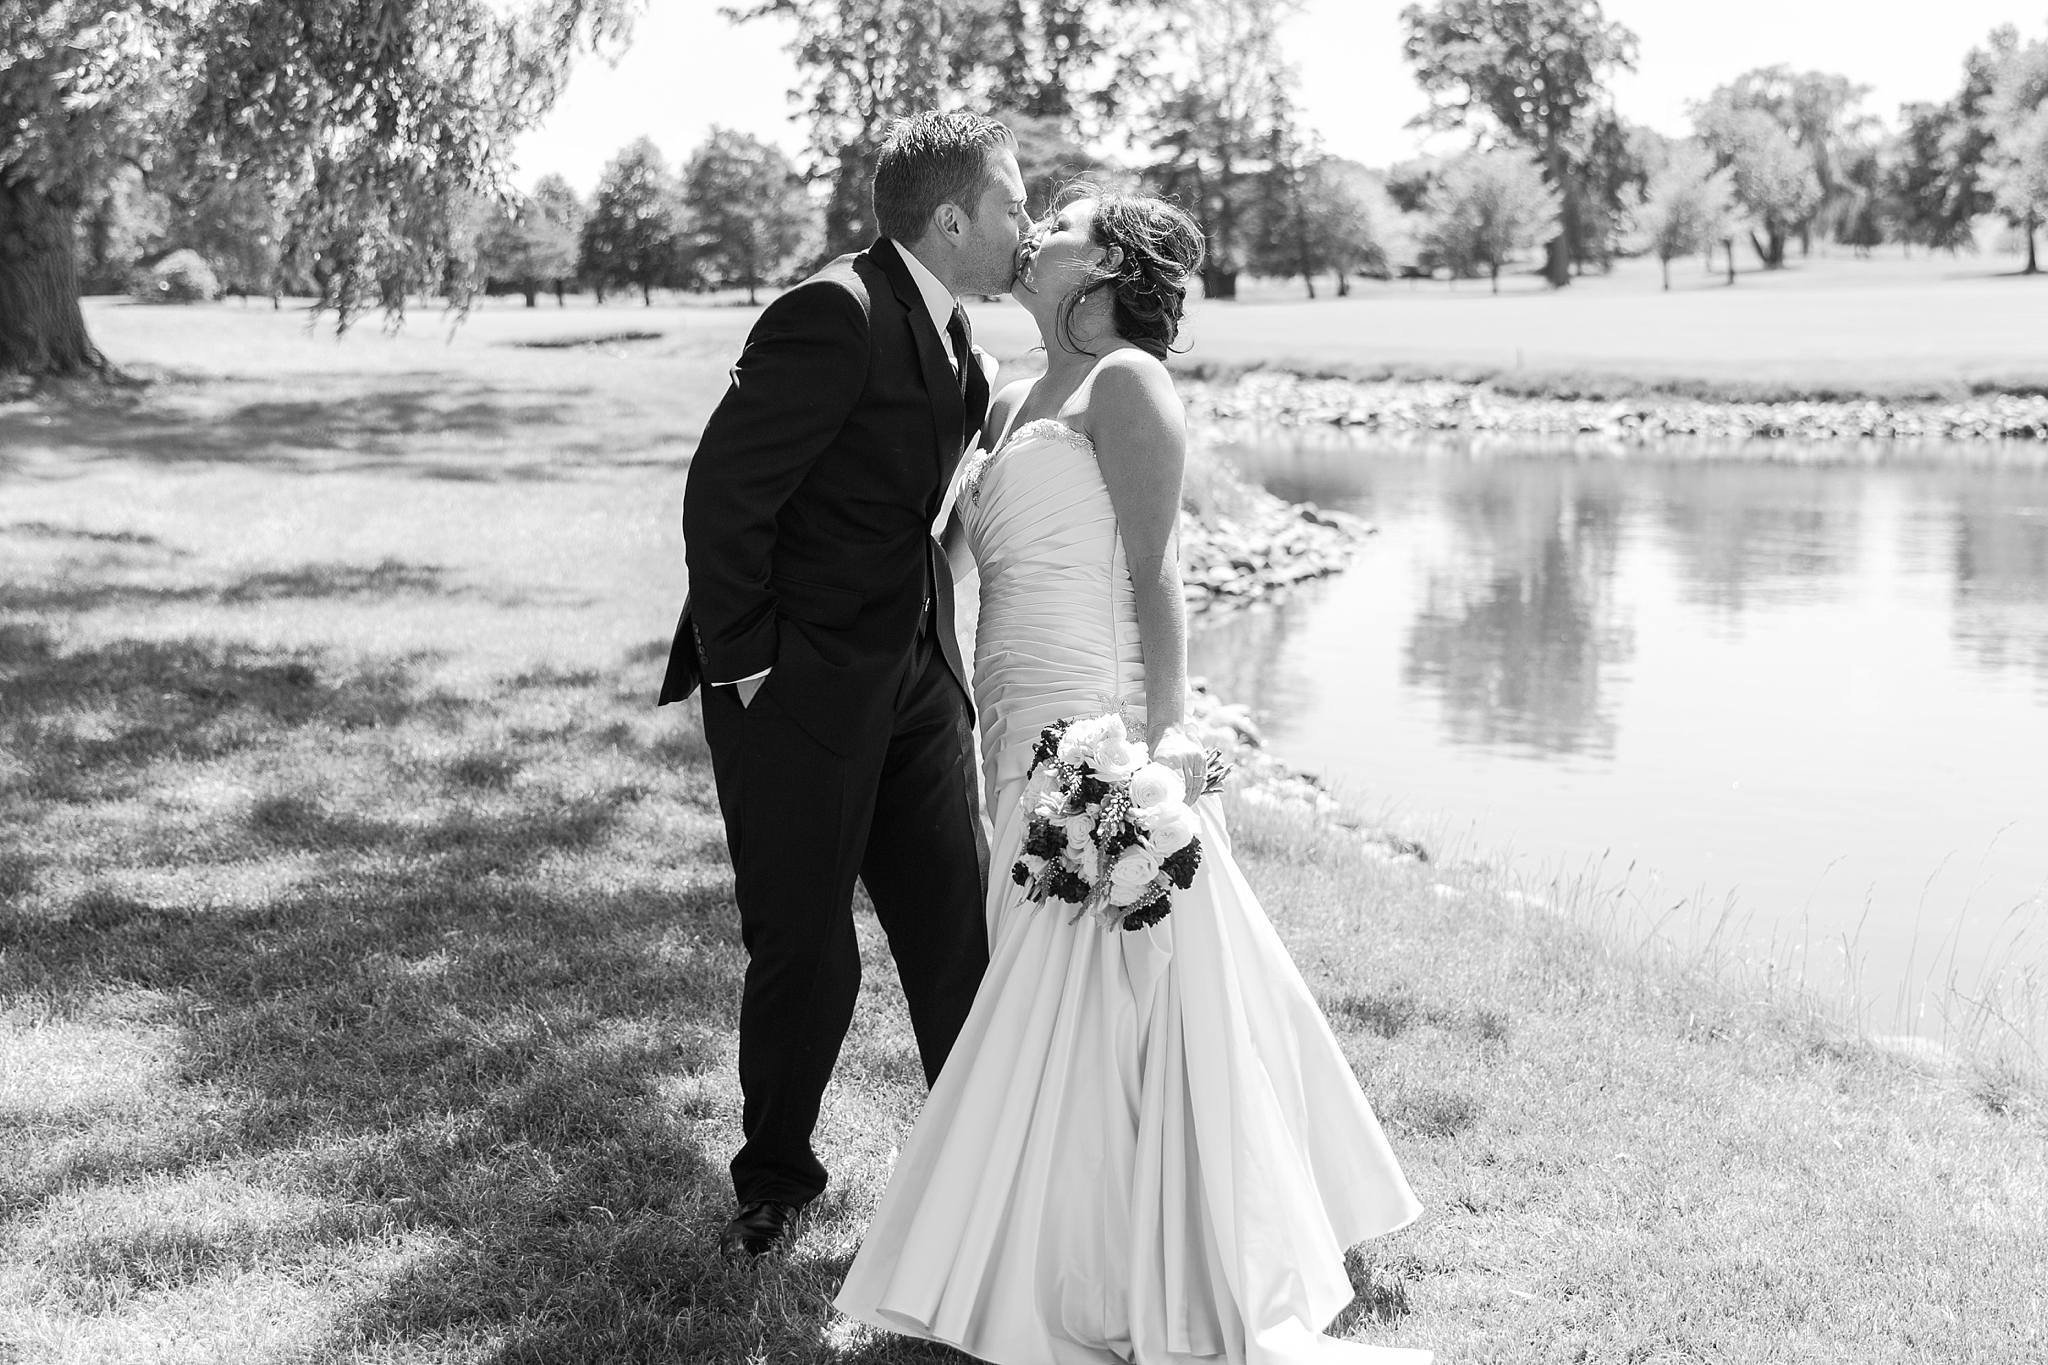 romantic-artful-candid-wedding-photos-in-detroit-lansing-ann-arbor-northern-michigan-and-chicago-by-courtney-carolyn-photography_0064.jpg